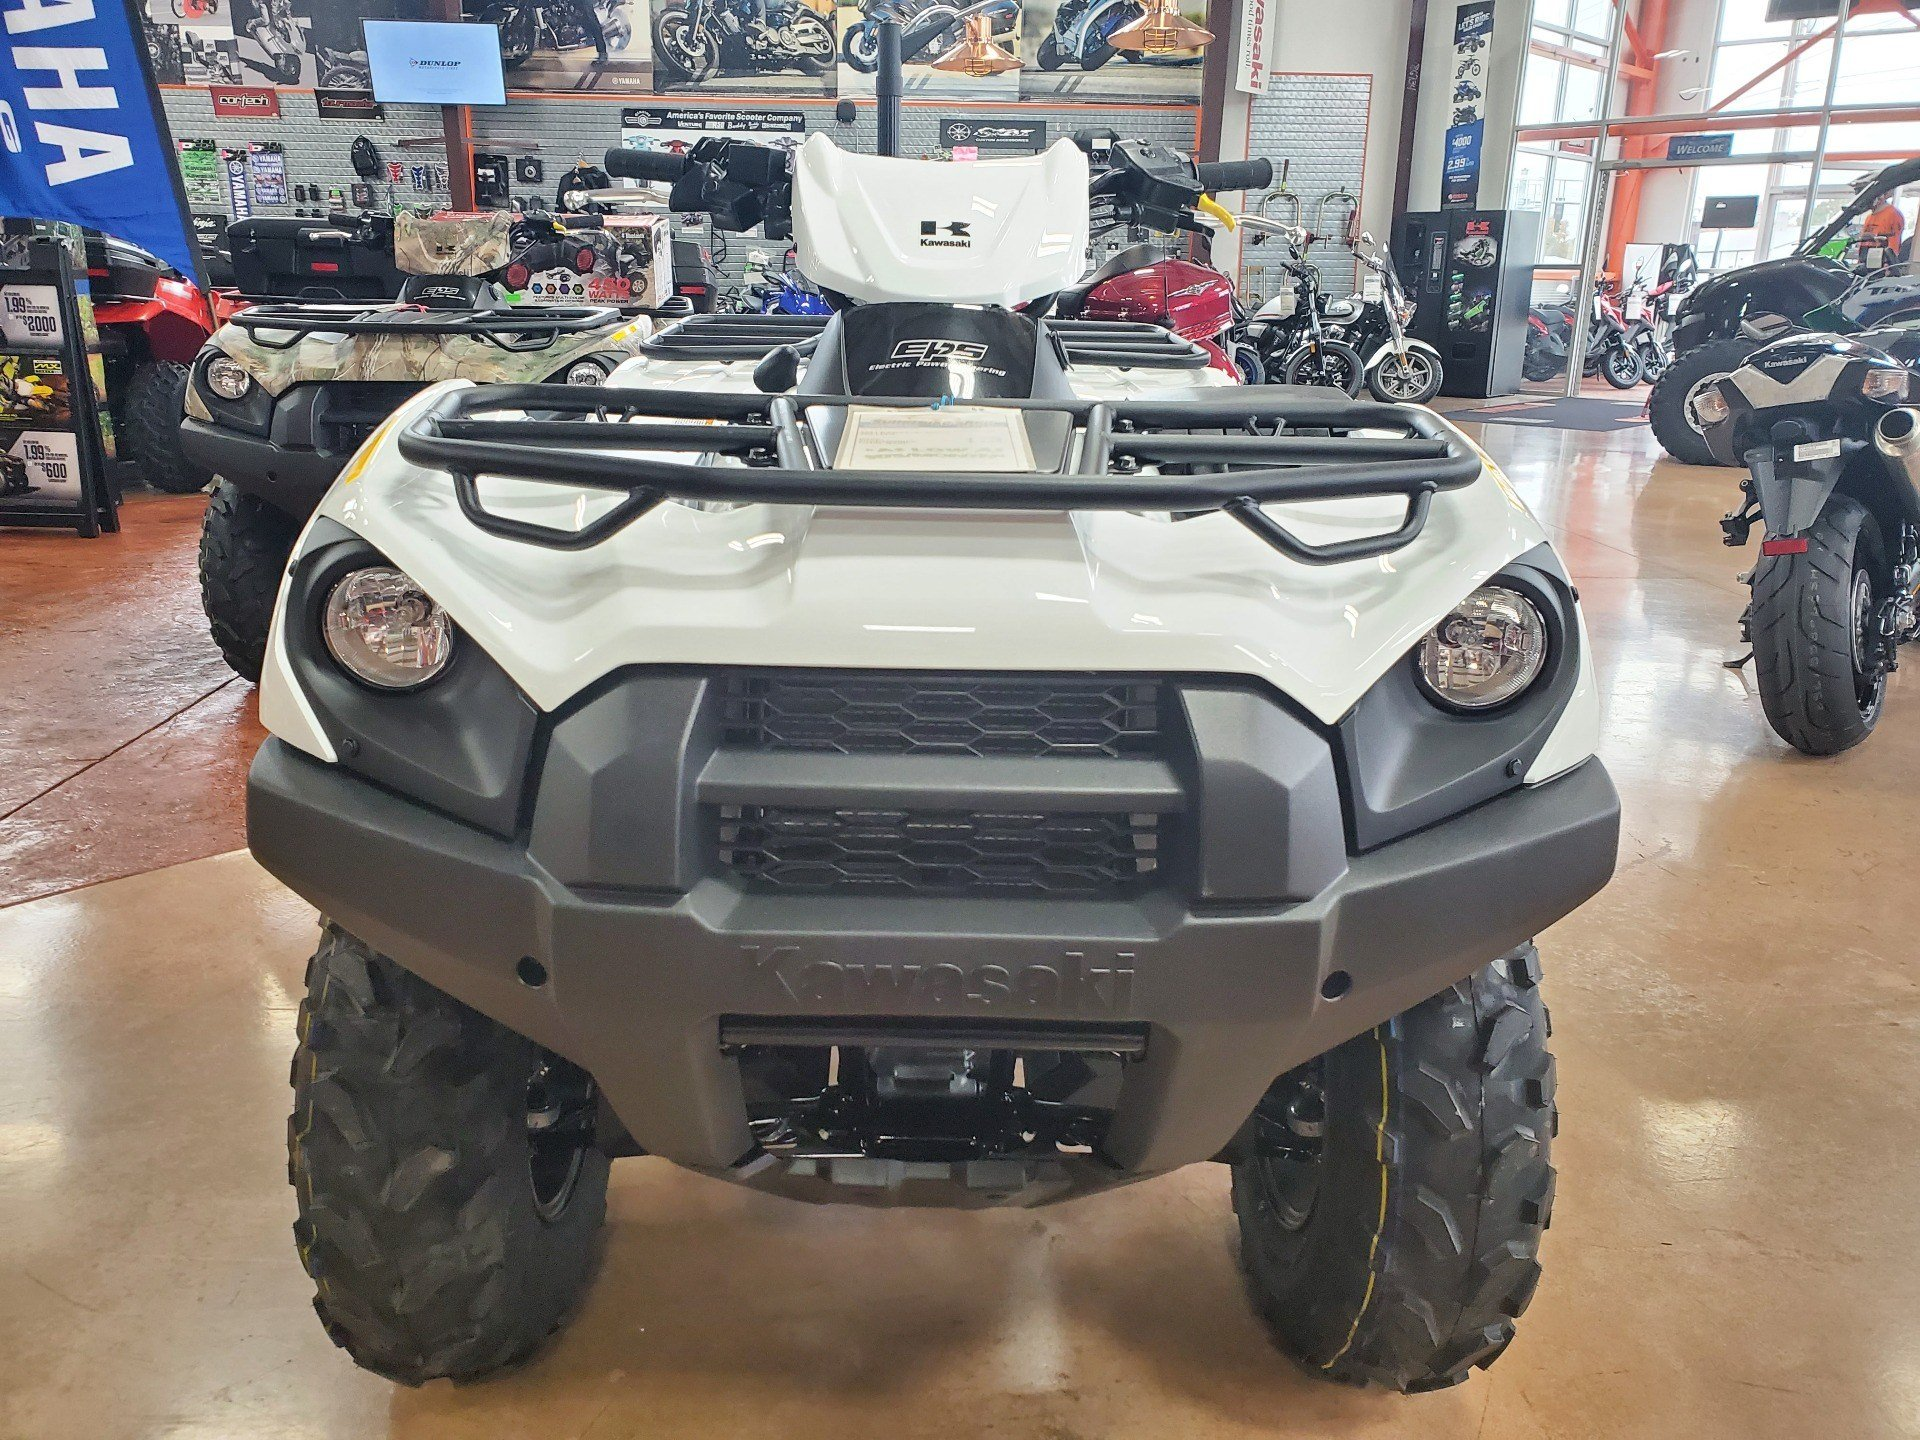 2021 Kawasaki Brute Force 750 4x4i EPS in Evansville, Indiana - Photo 2